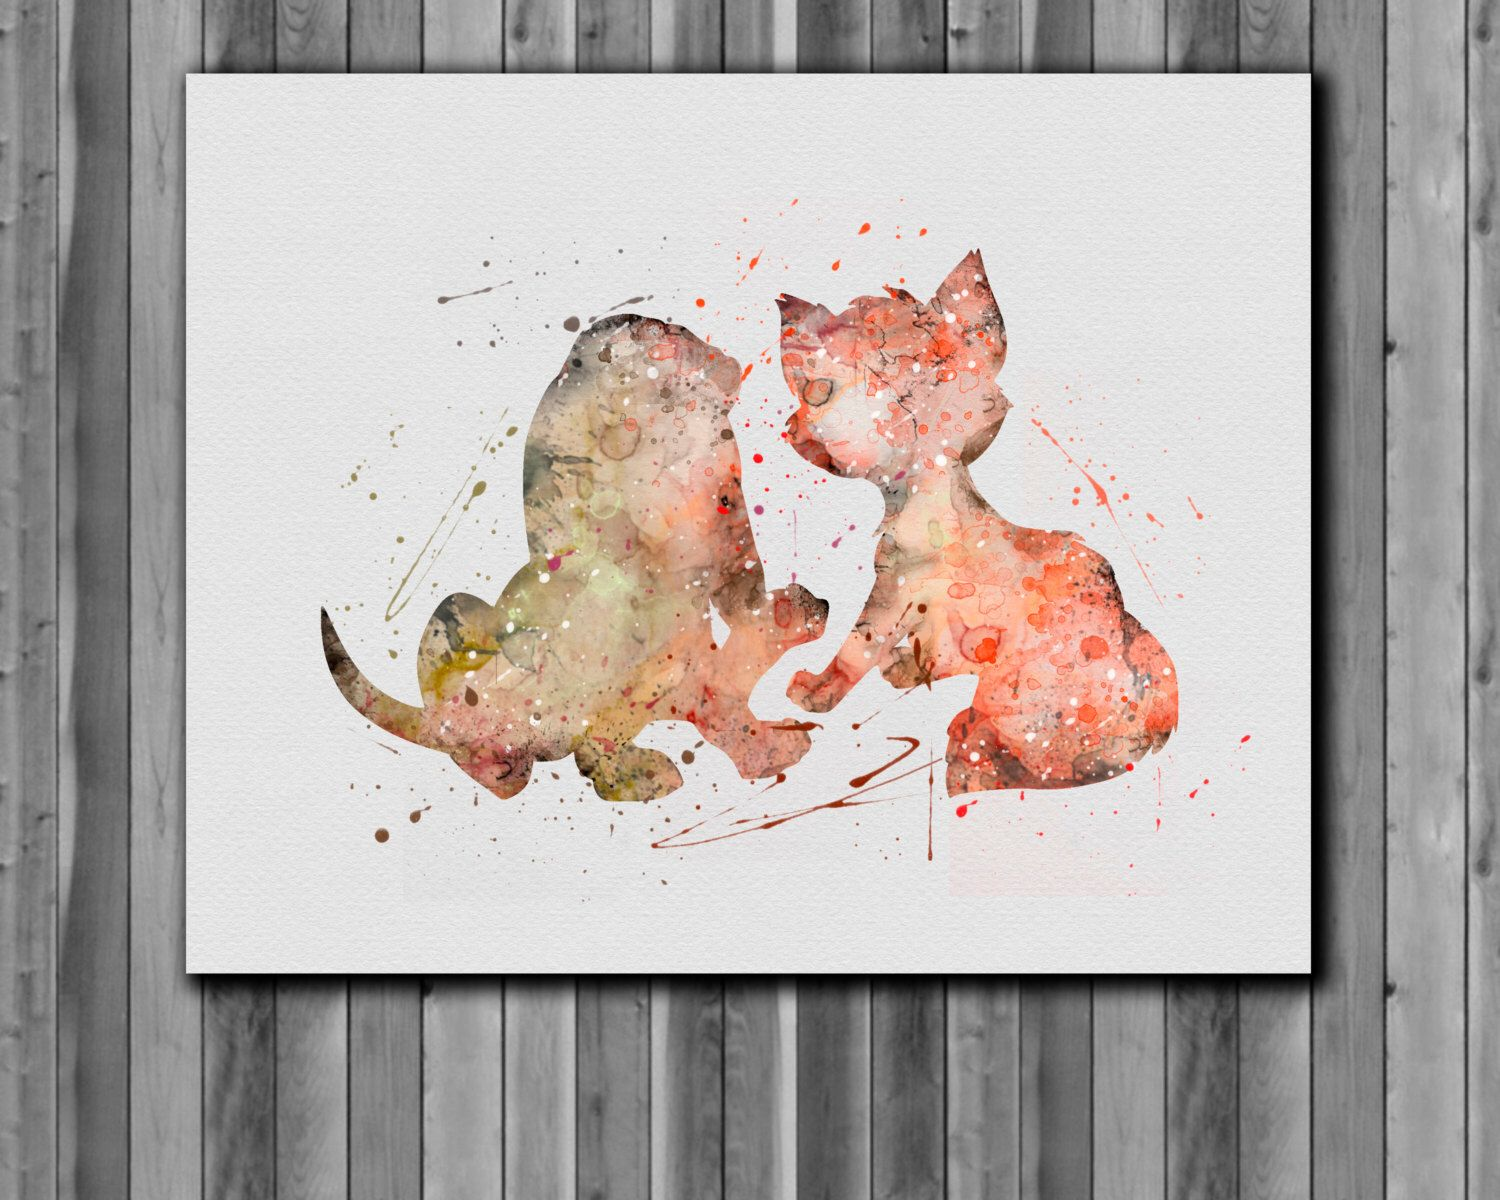 The Fox and the Hound disney poster - Art Print, instant download, Watercolor Print by digitalaquamarine on Etsy https://www.etsy.com/listing/218493795/the-fox-and-the-hound-disney-poster-art